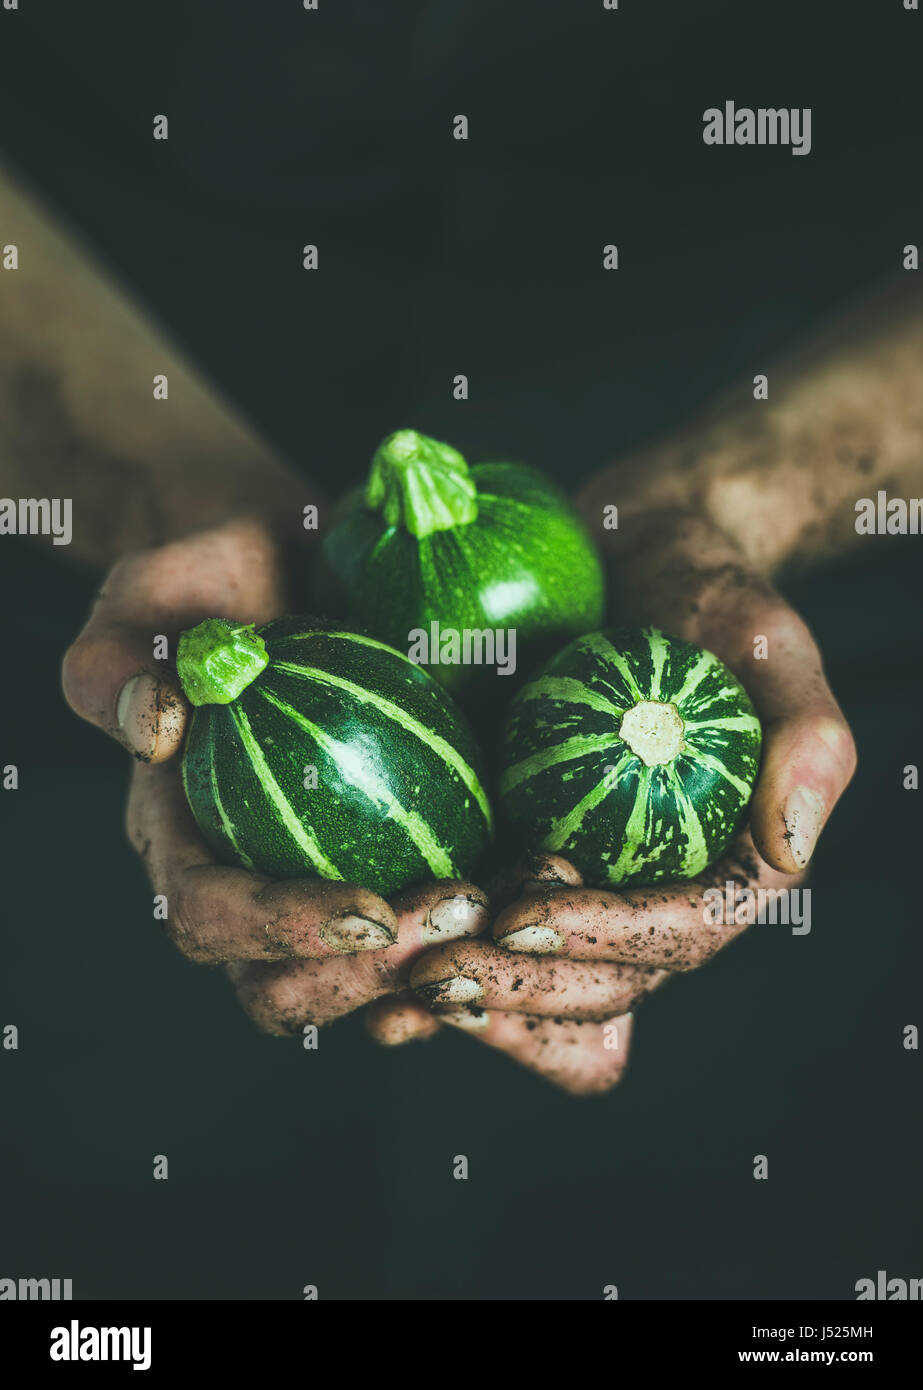 Man wearing black clothing holding fresh seasonal green round zucchinis in his dirty hands at local farmers market. - Stock Image